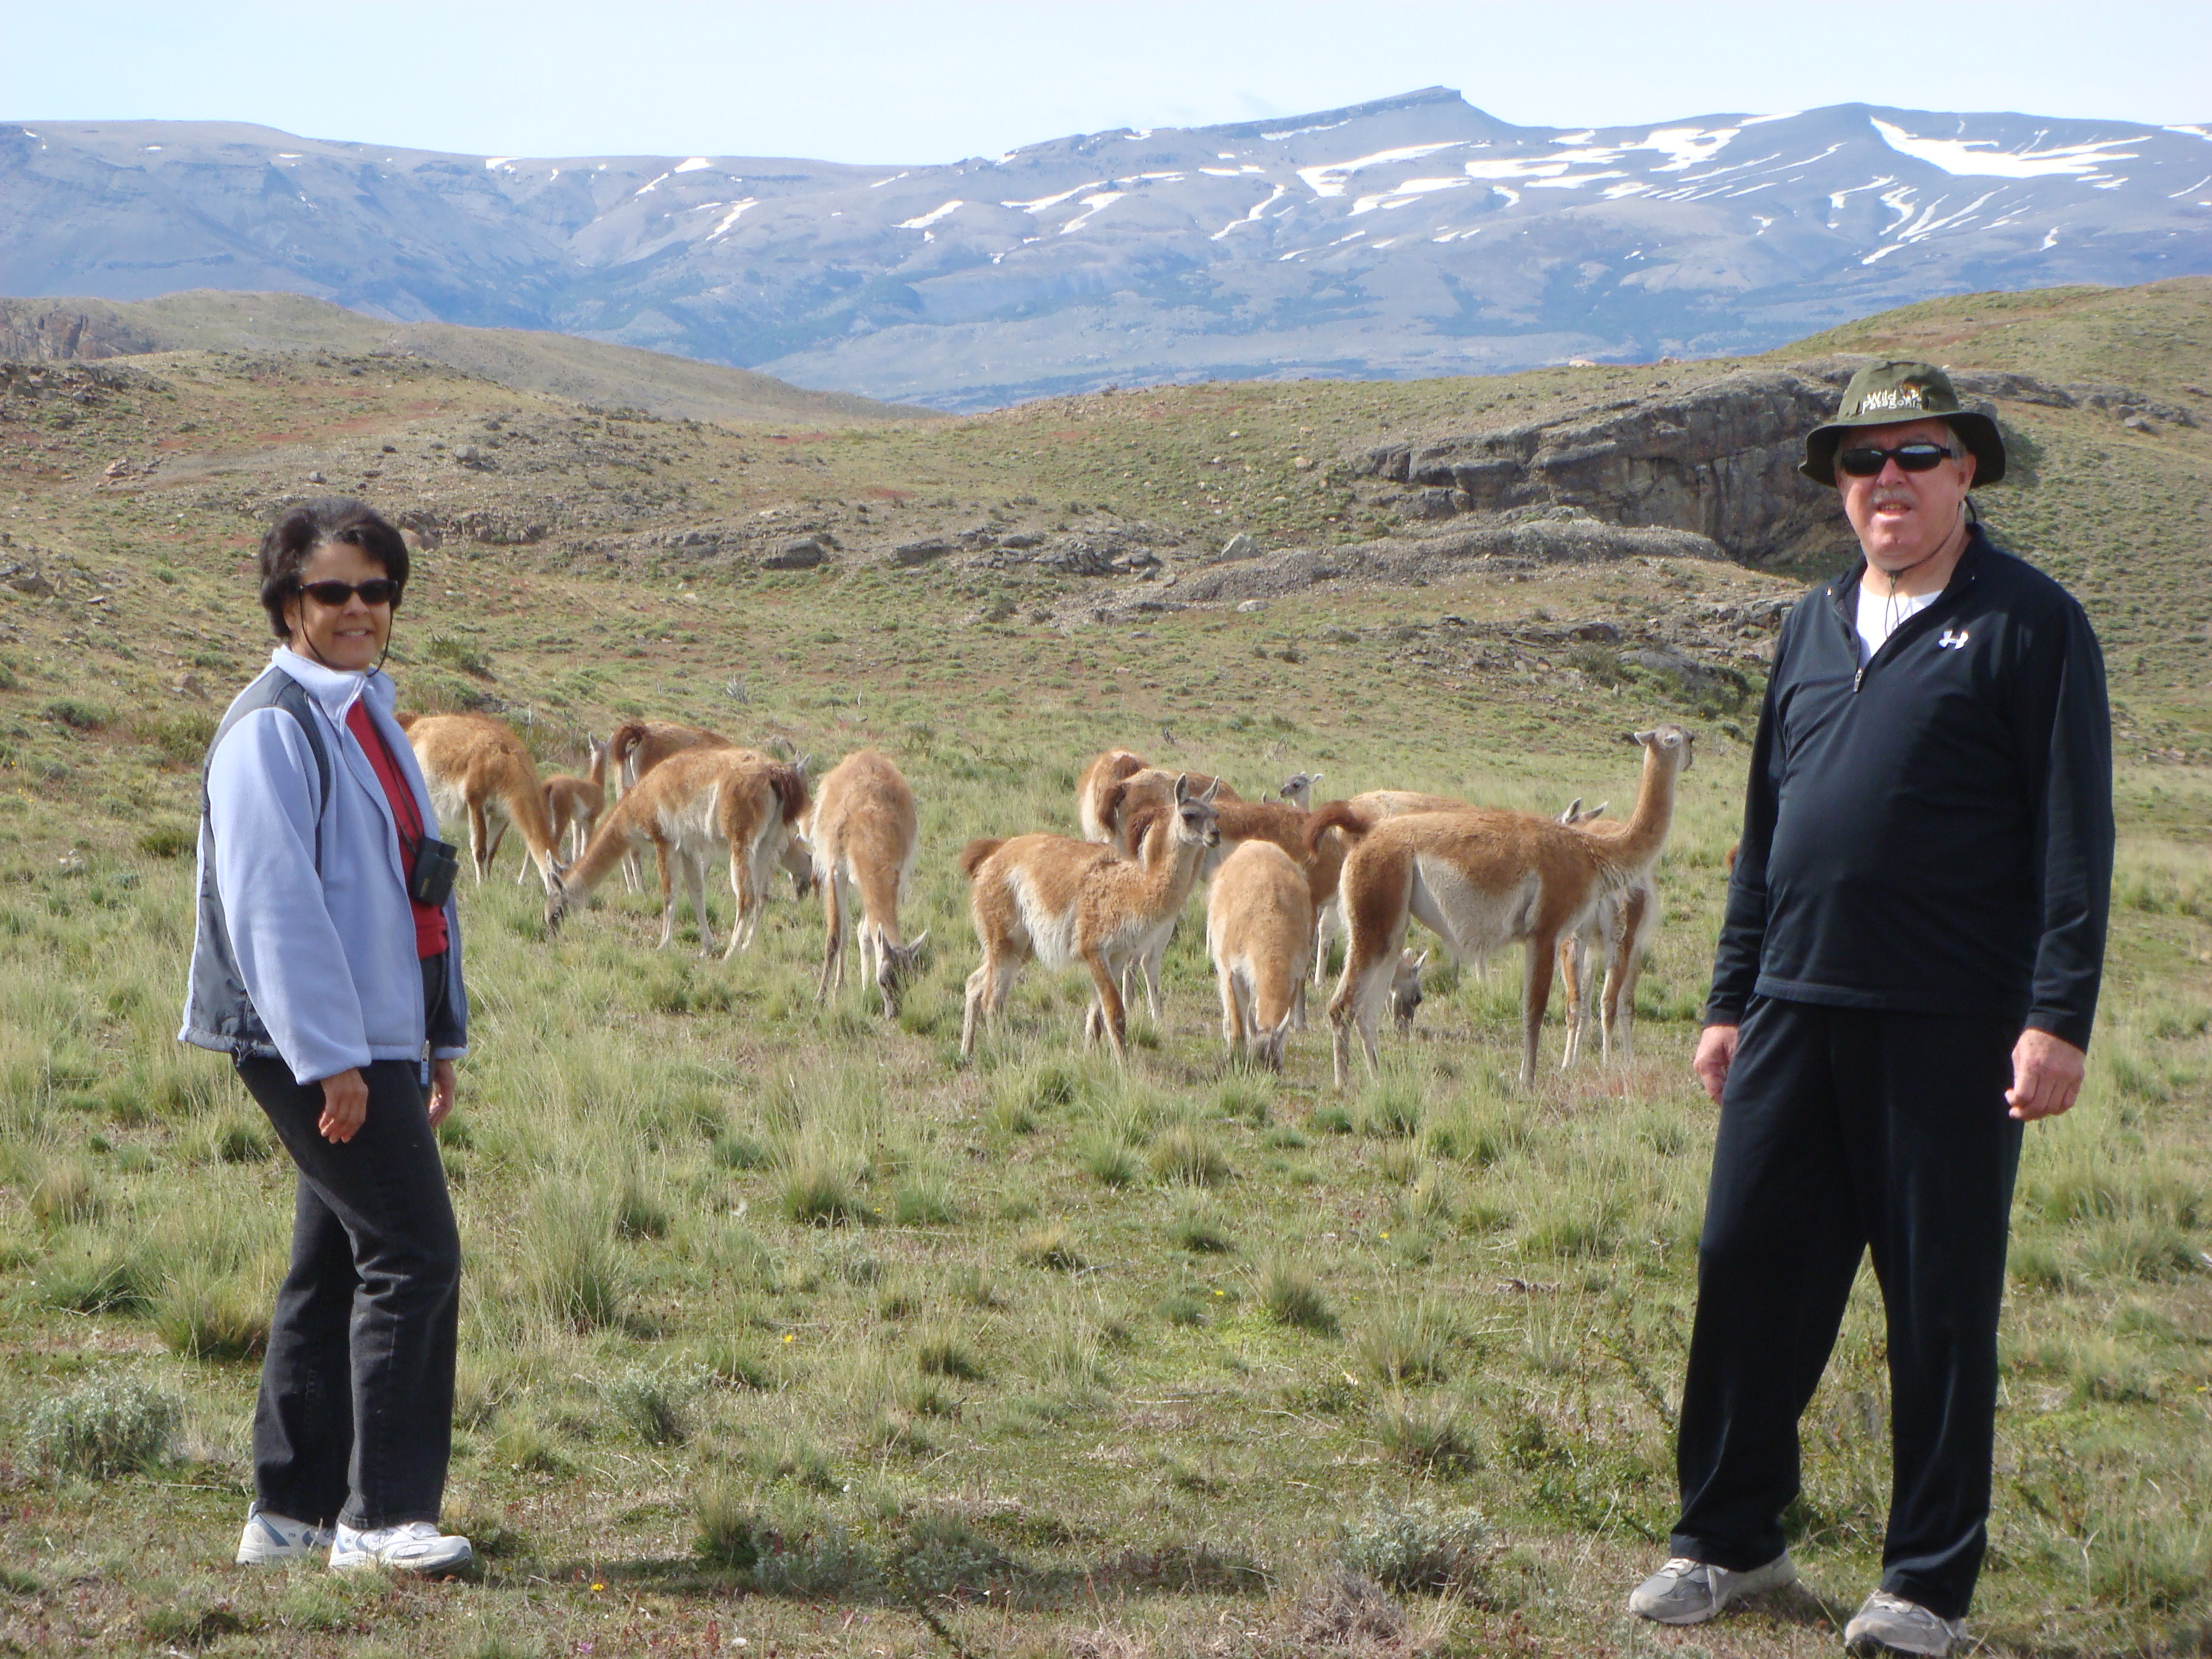 couple with llamas